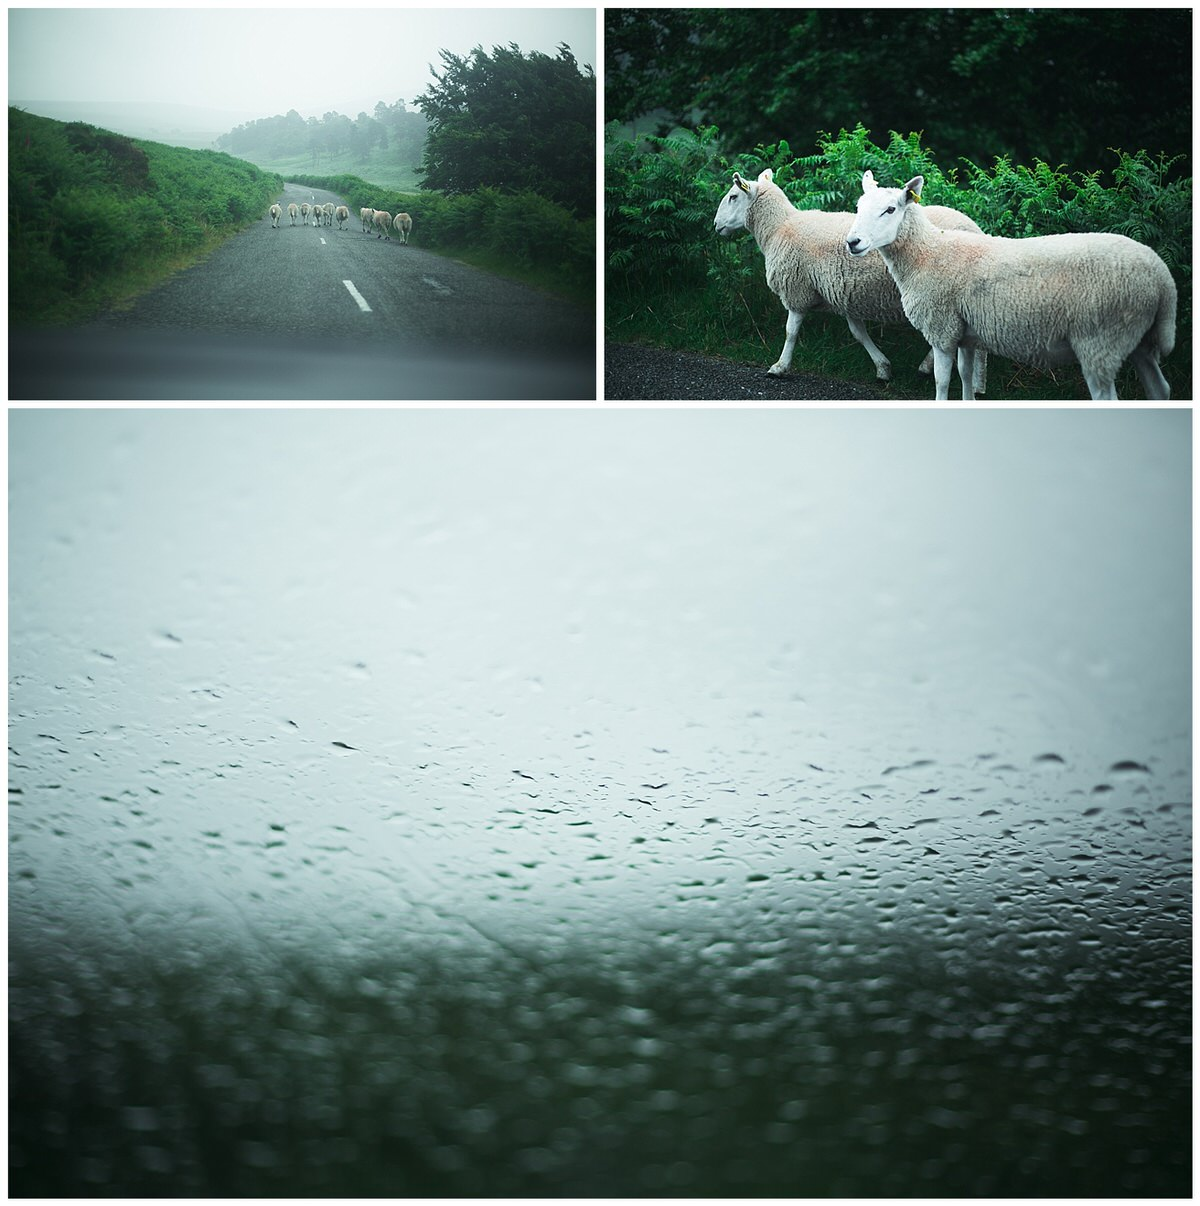 Sheep running along a mountain road in wicklow on a typically rainy summer in Ireland